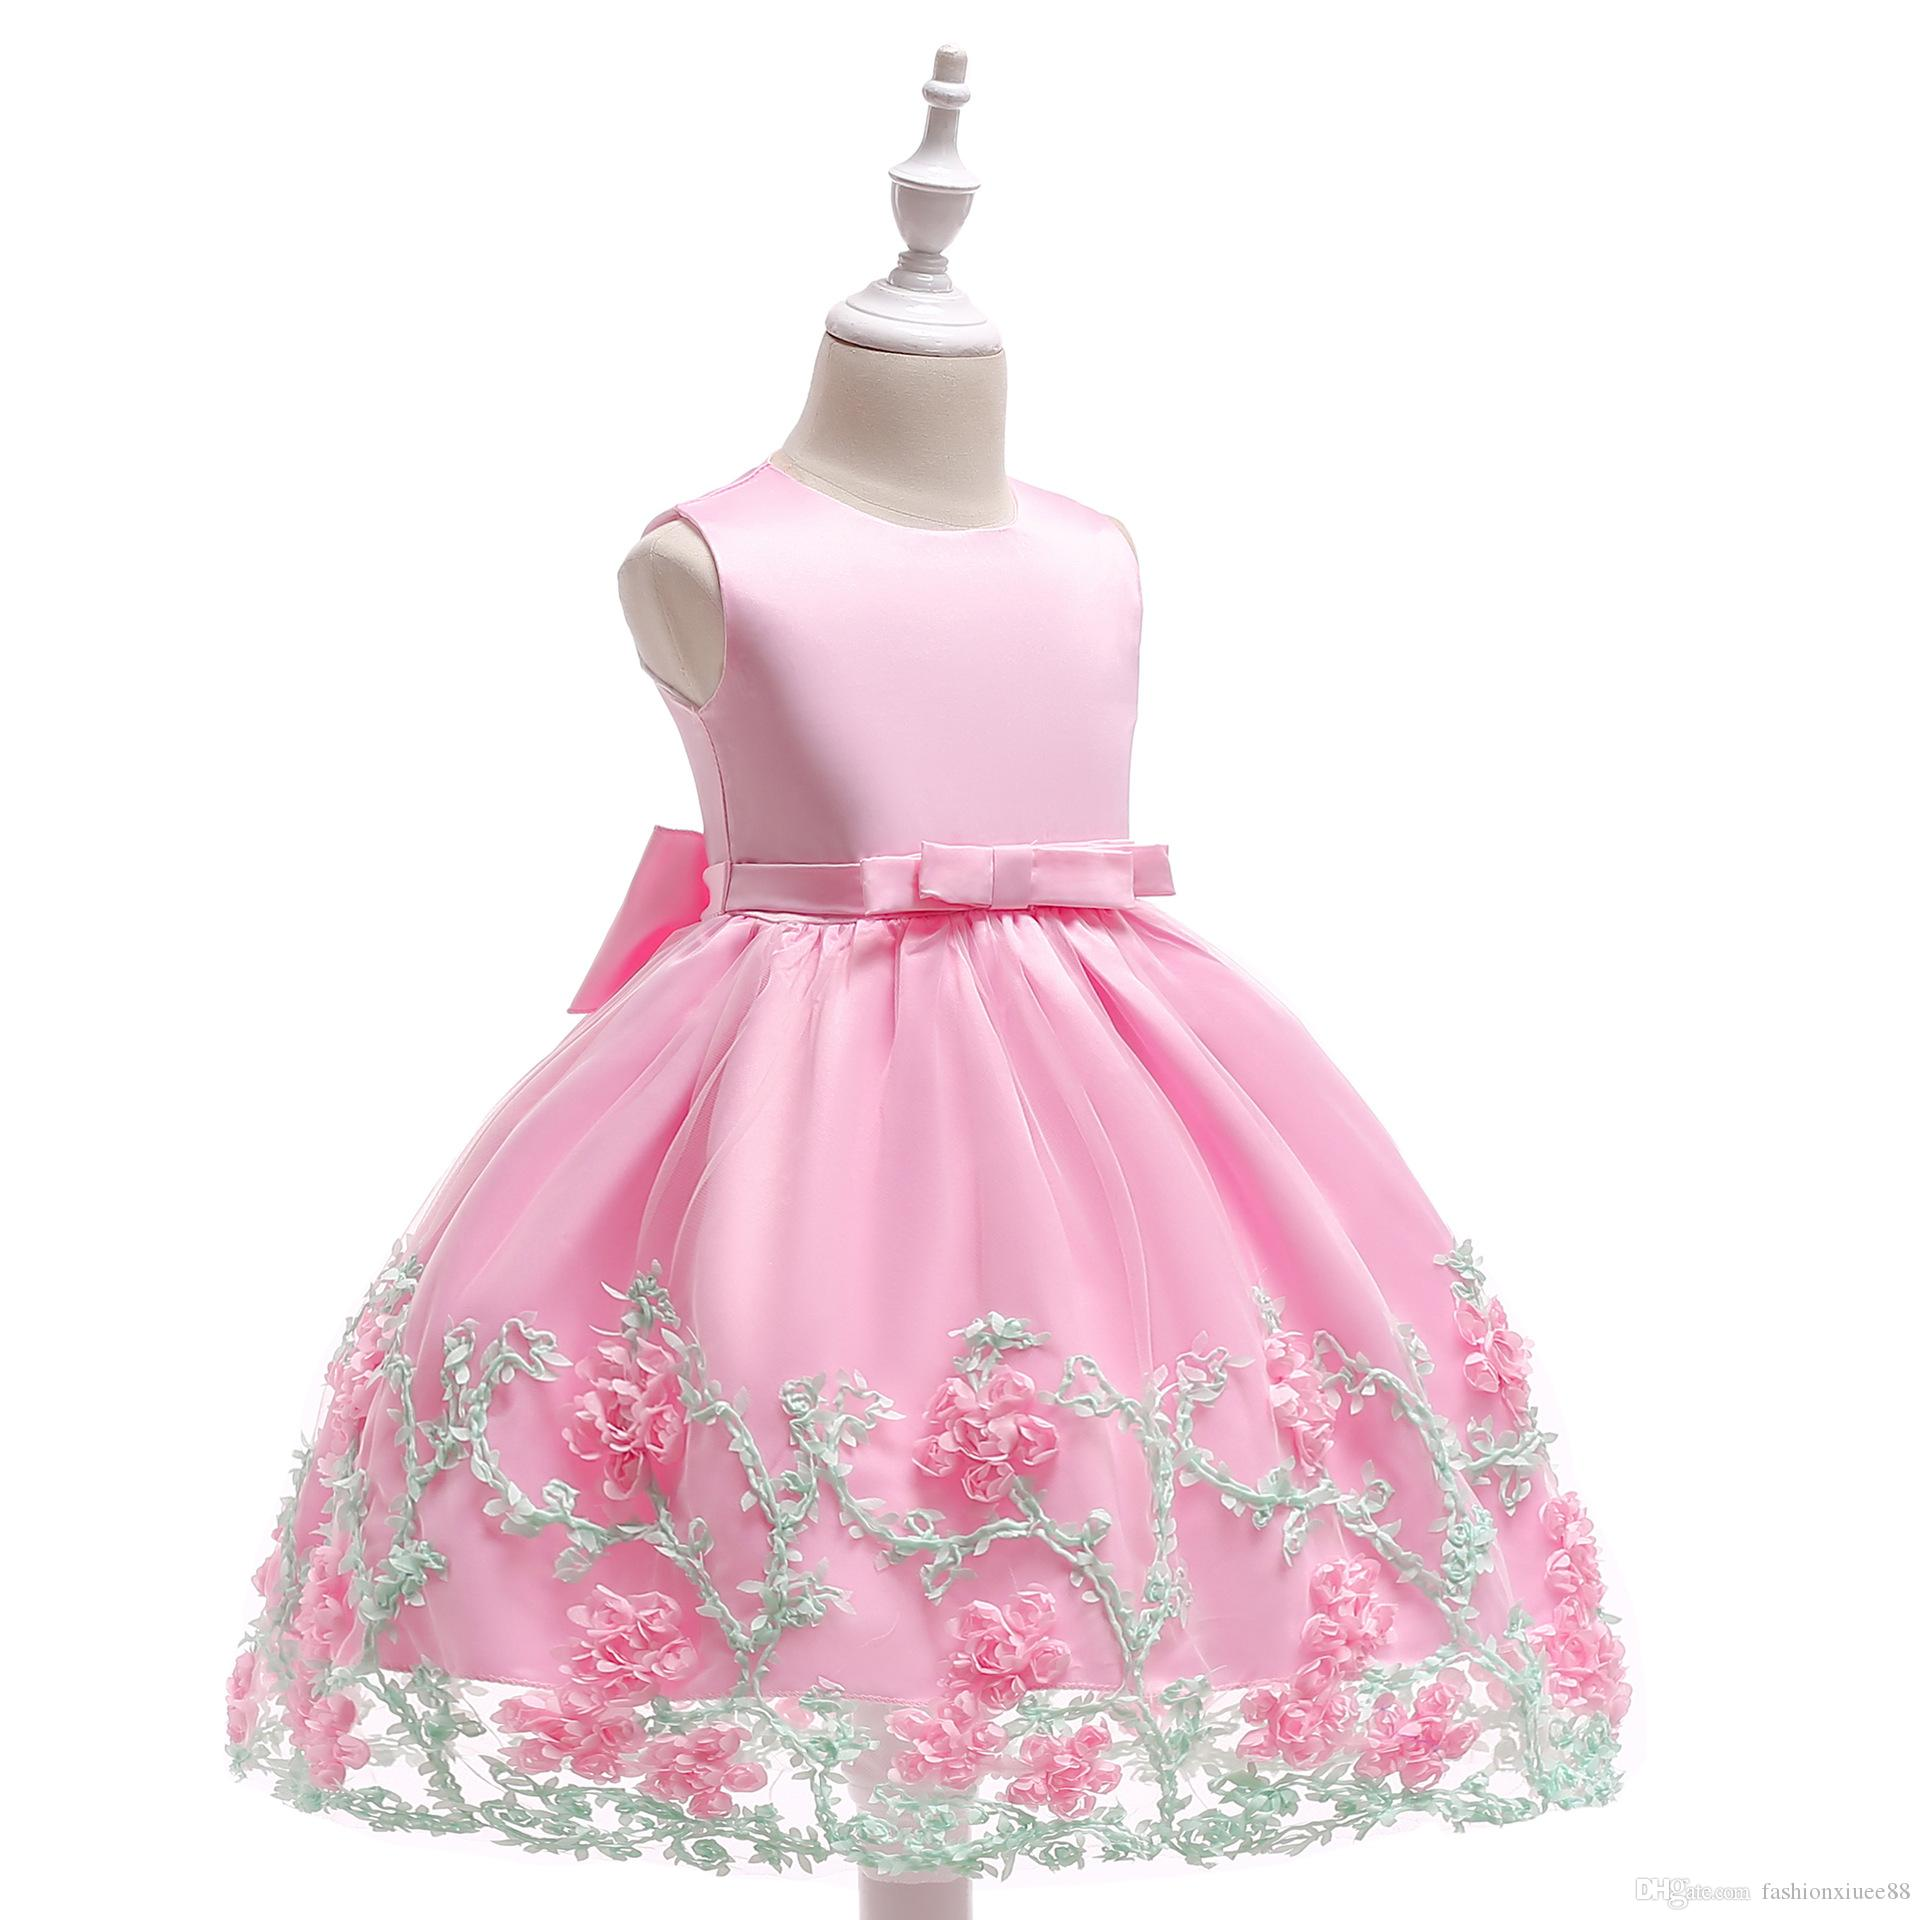 New Arrival Pink Tulle Pretty Flower Girl Dresses bling sequins Baby Girl Infant lace Dress Kids Formal Wear free shipping